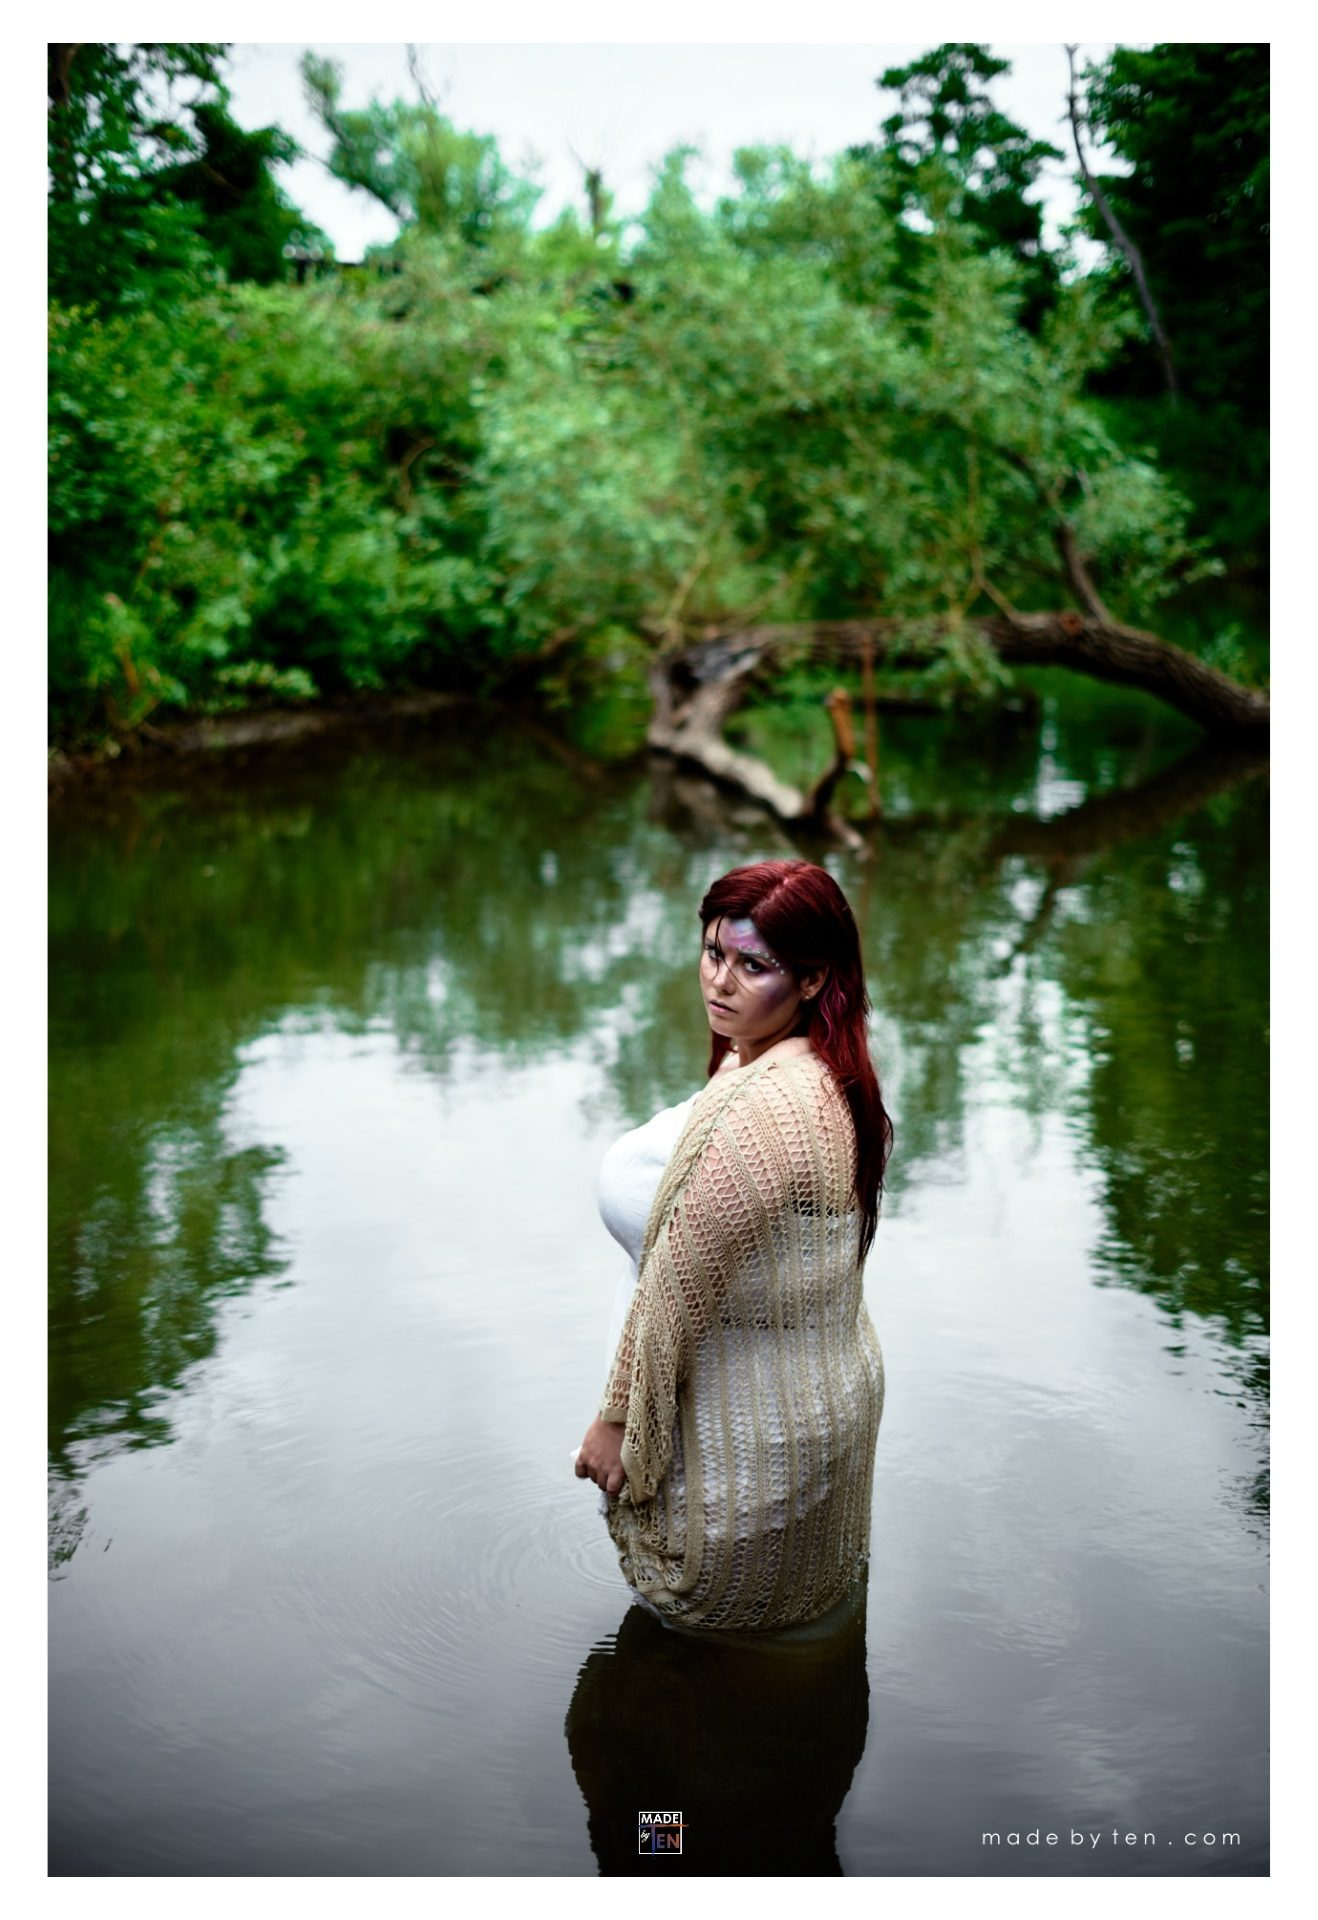 Woman Standing in Pond Water - GTA Women Fantasy Photography